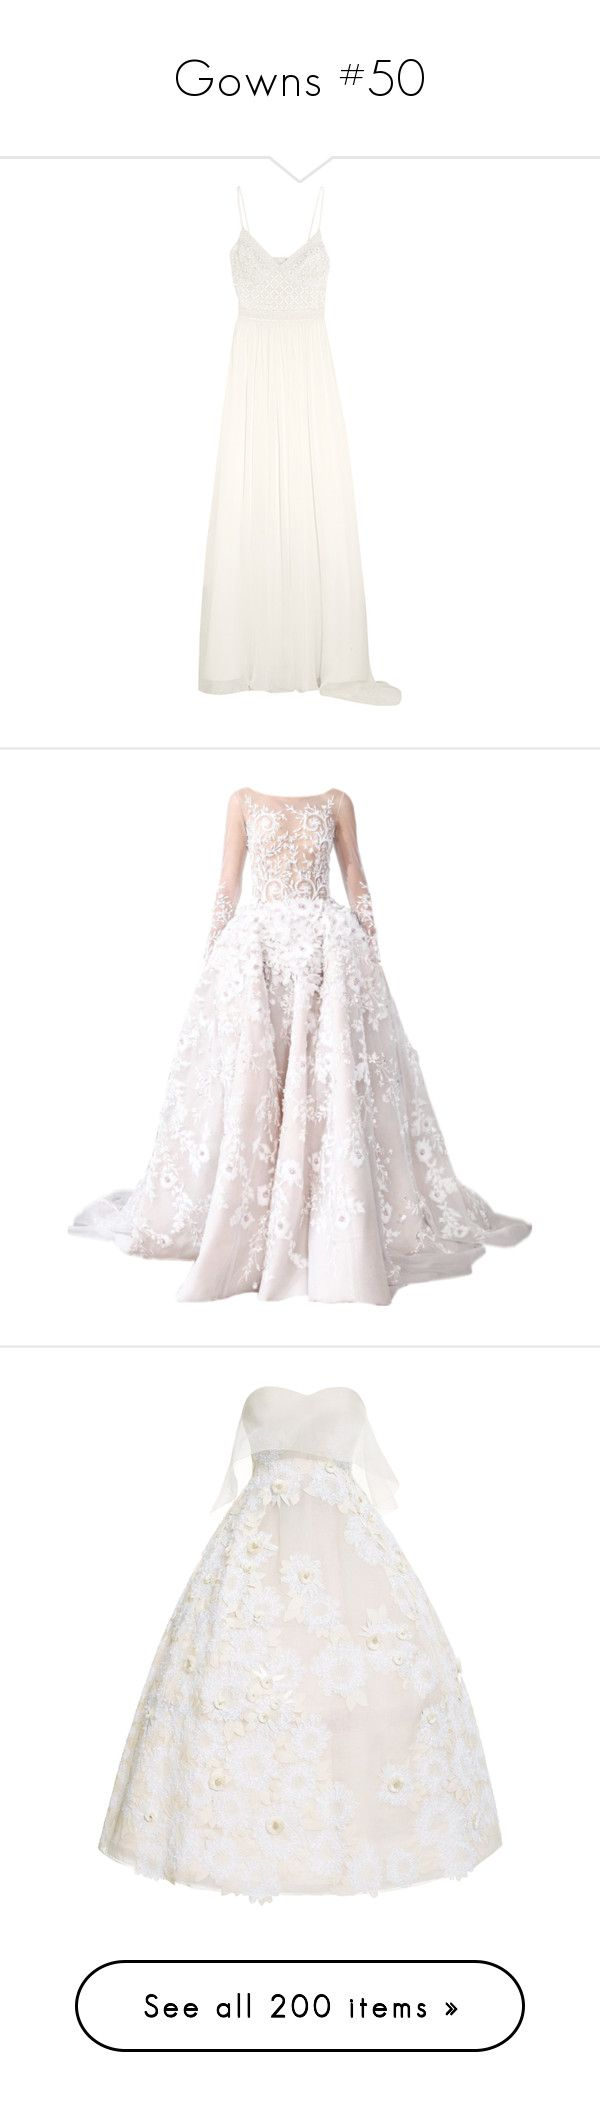 """""""Gowns #50"""" by jewelsinthecrown ❤ liked on Polyvore featuring dresses, gowns, long dresses, maxi dress, temperley london, tulle bridal gowns, white maxi dress, white evening dresses, white evening gowns and long maxi dresses"""